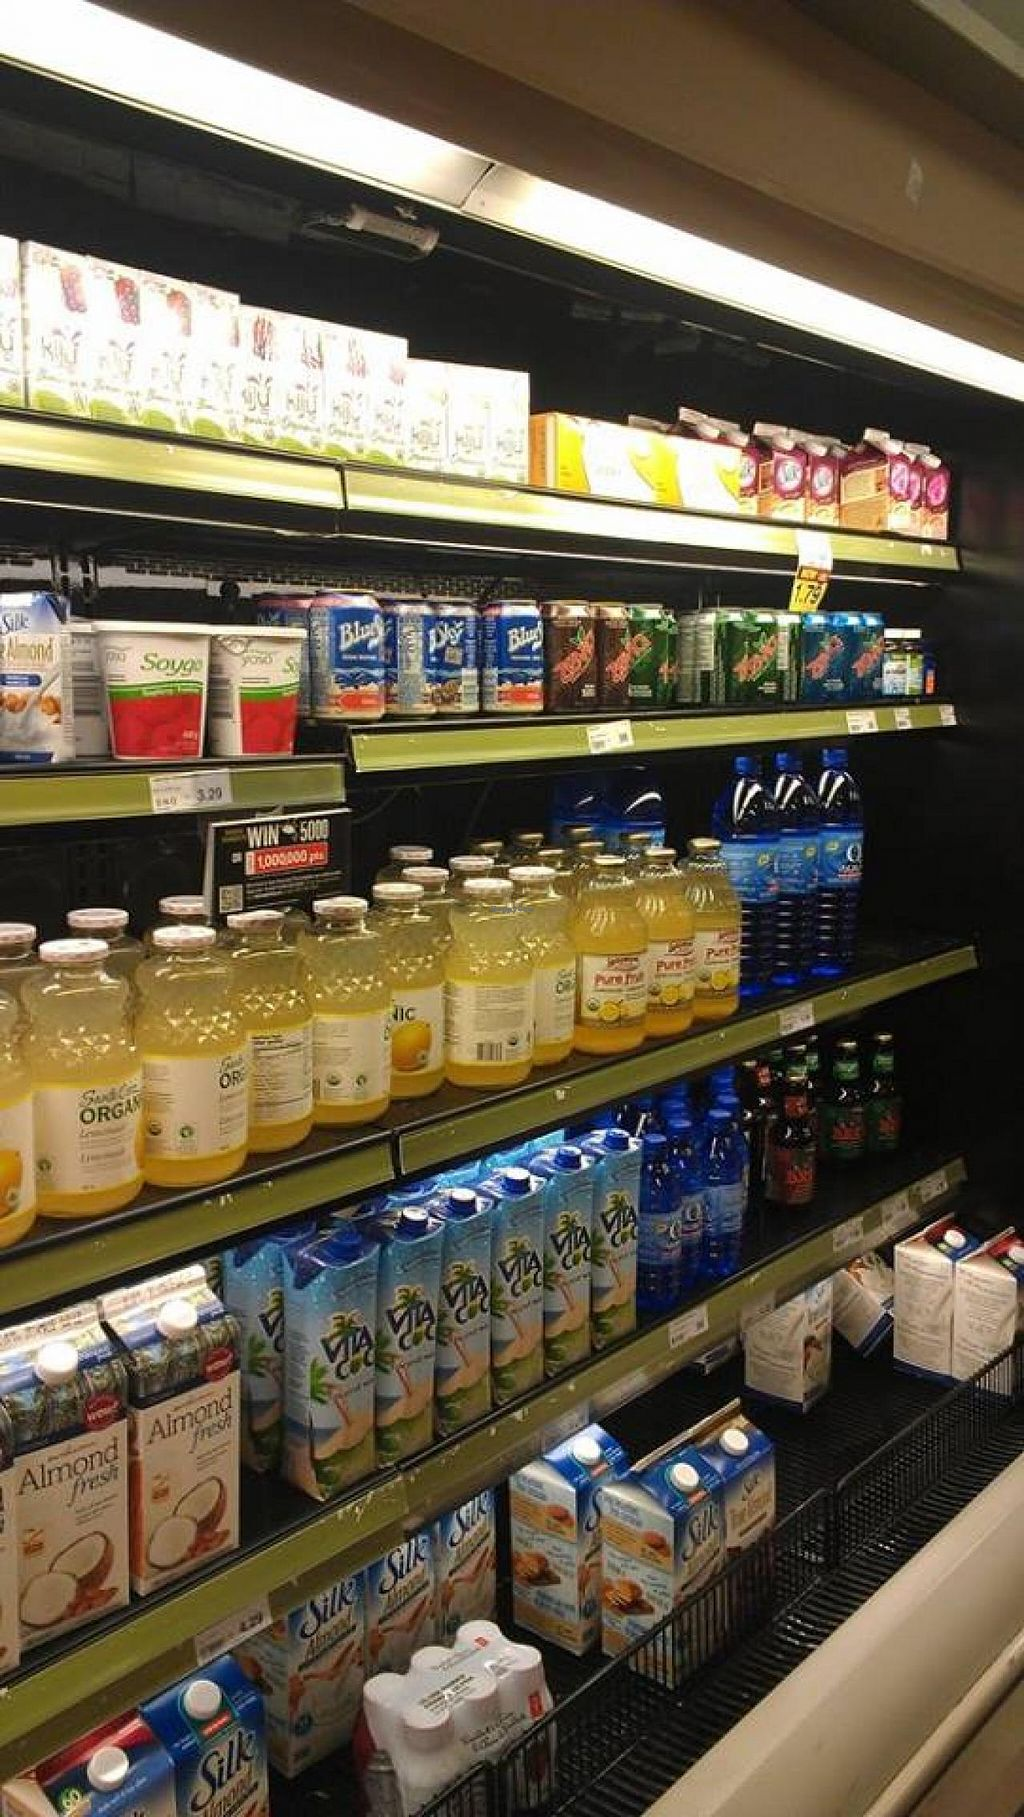 "Photo of Atlantic Superstore  by <a href=""/members/profile/QuothTheRaven"">QuothTheRaven</a> <br/>Juice and milk <br/> April 4, 2014  - <a href='/contact/abuse/image/39405/67055'>Report</a>"